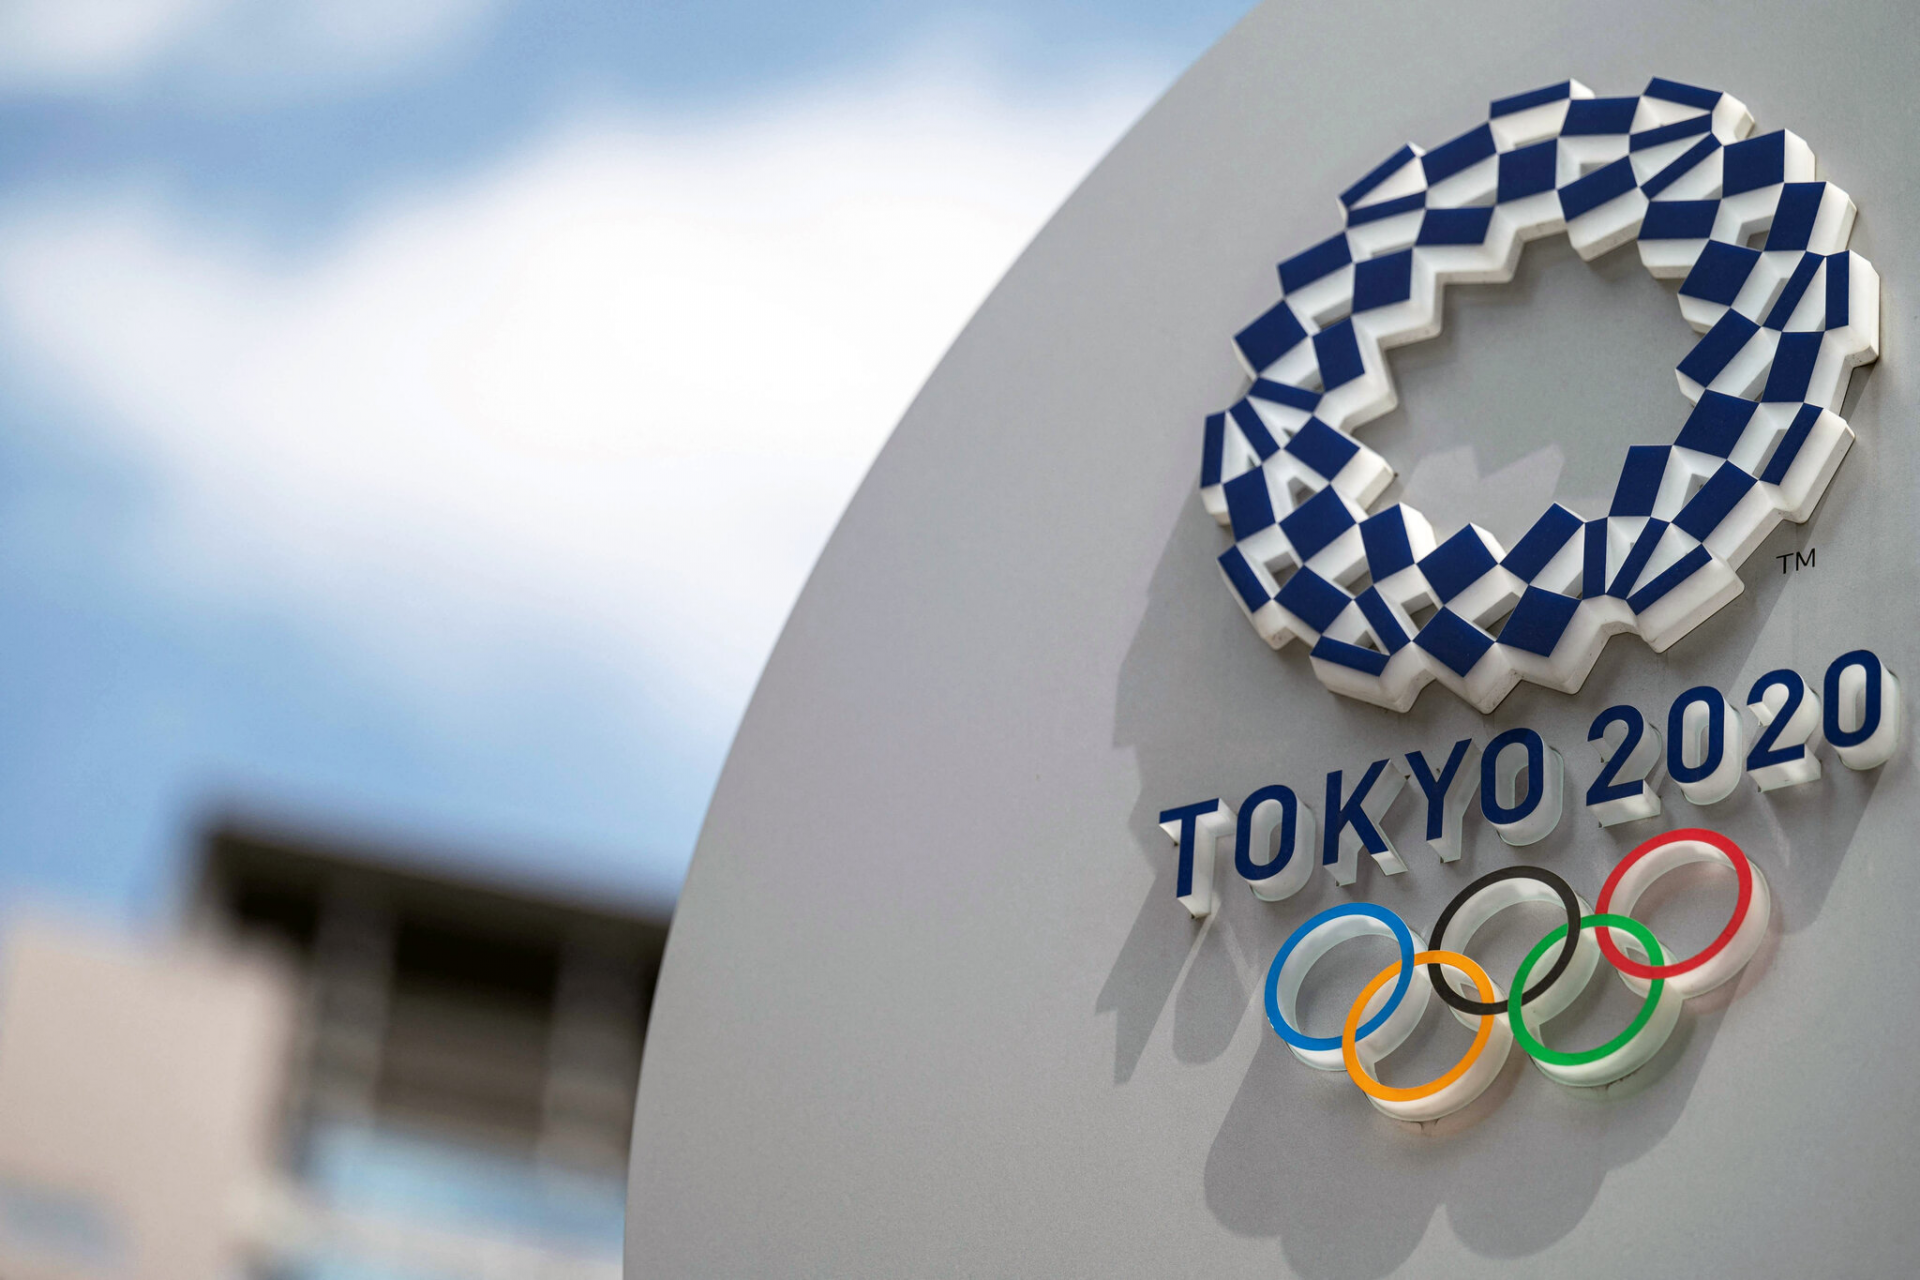 How to Watch Tokyo Olympics in South Africa: TV Channel, Apps, Live Stream